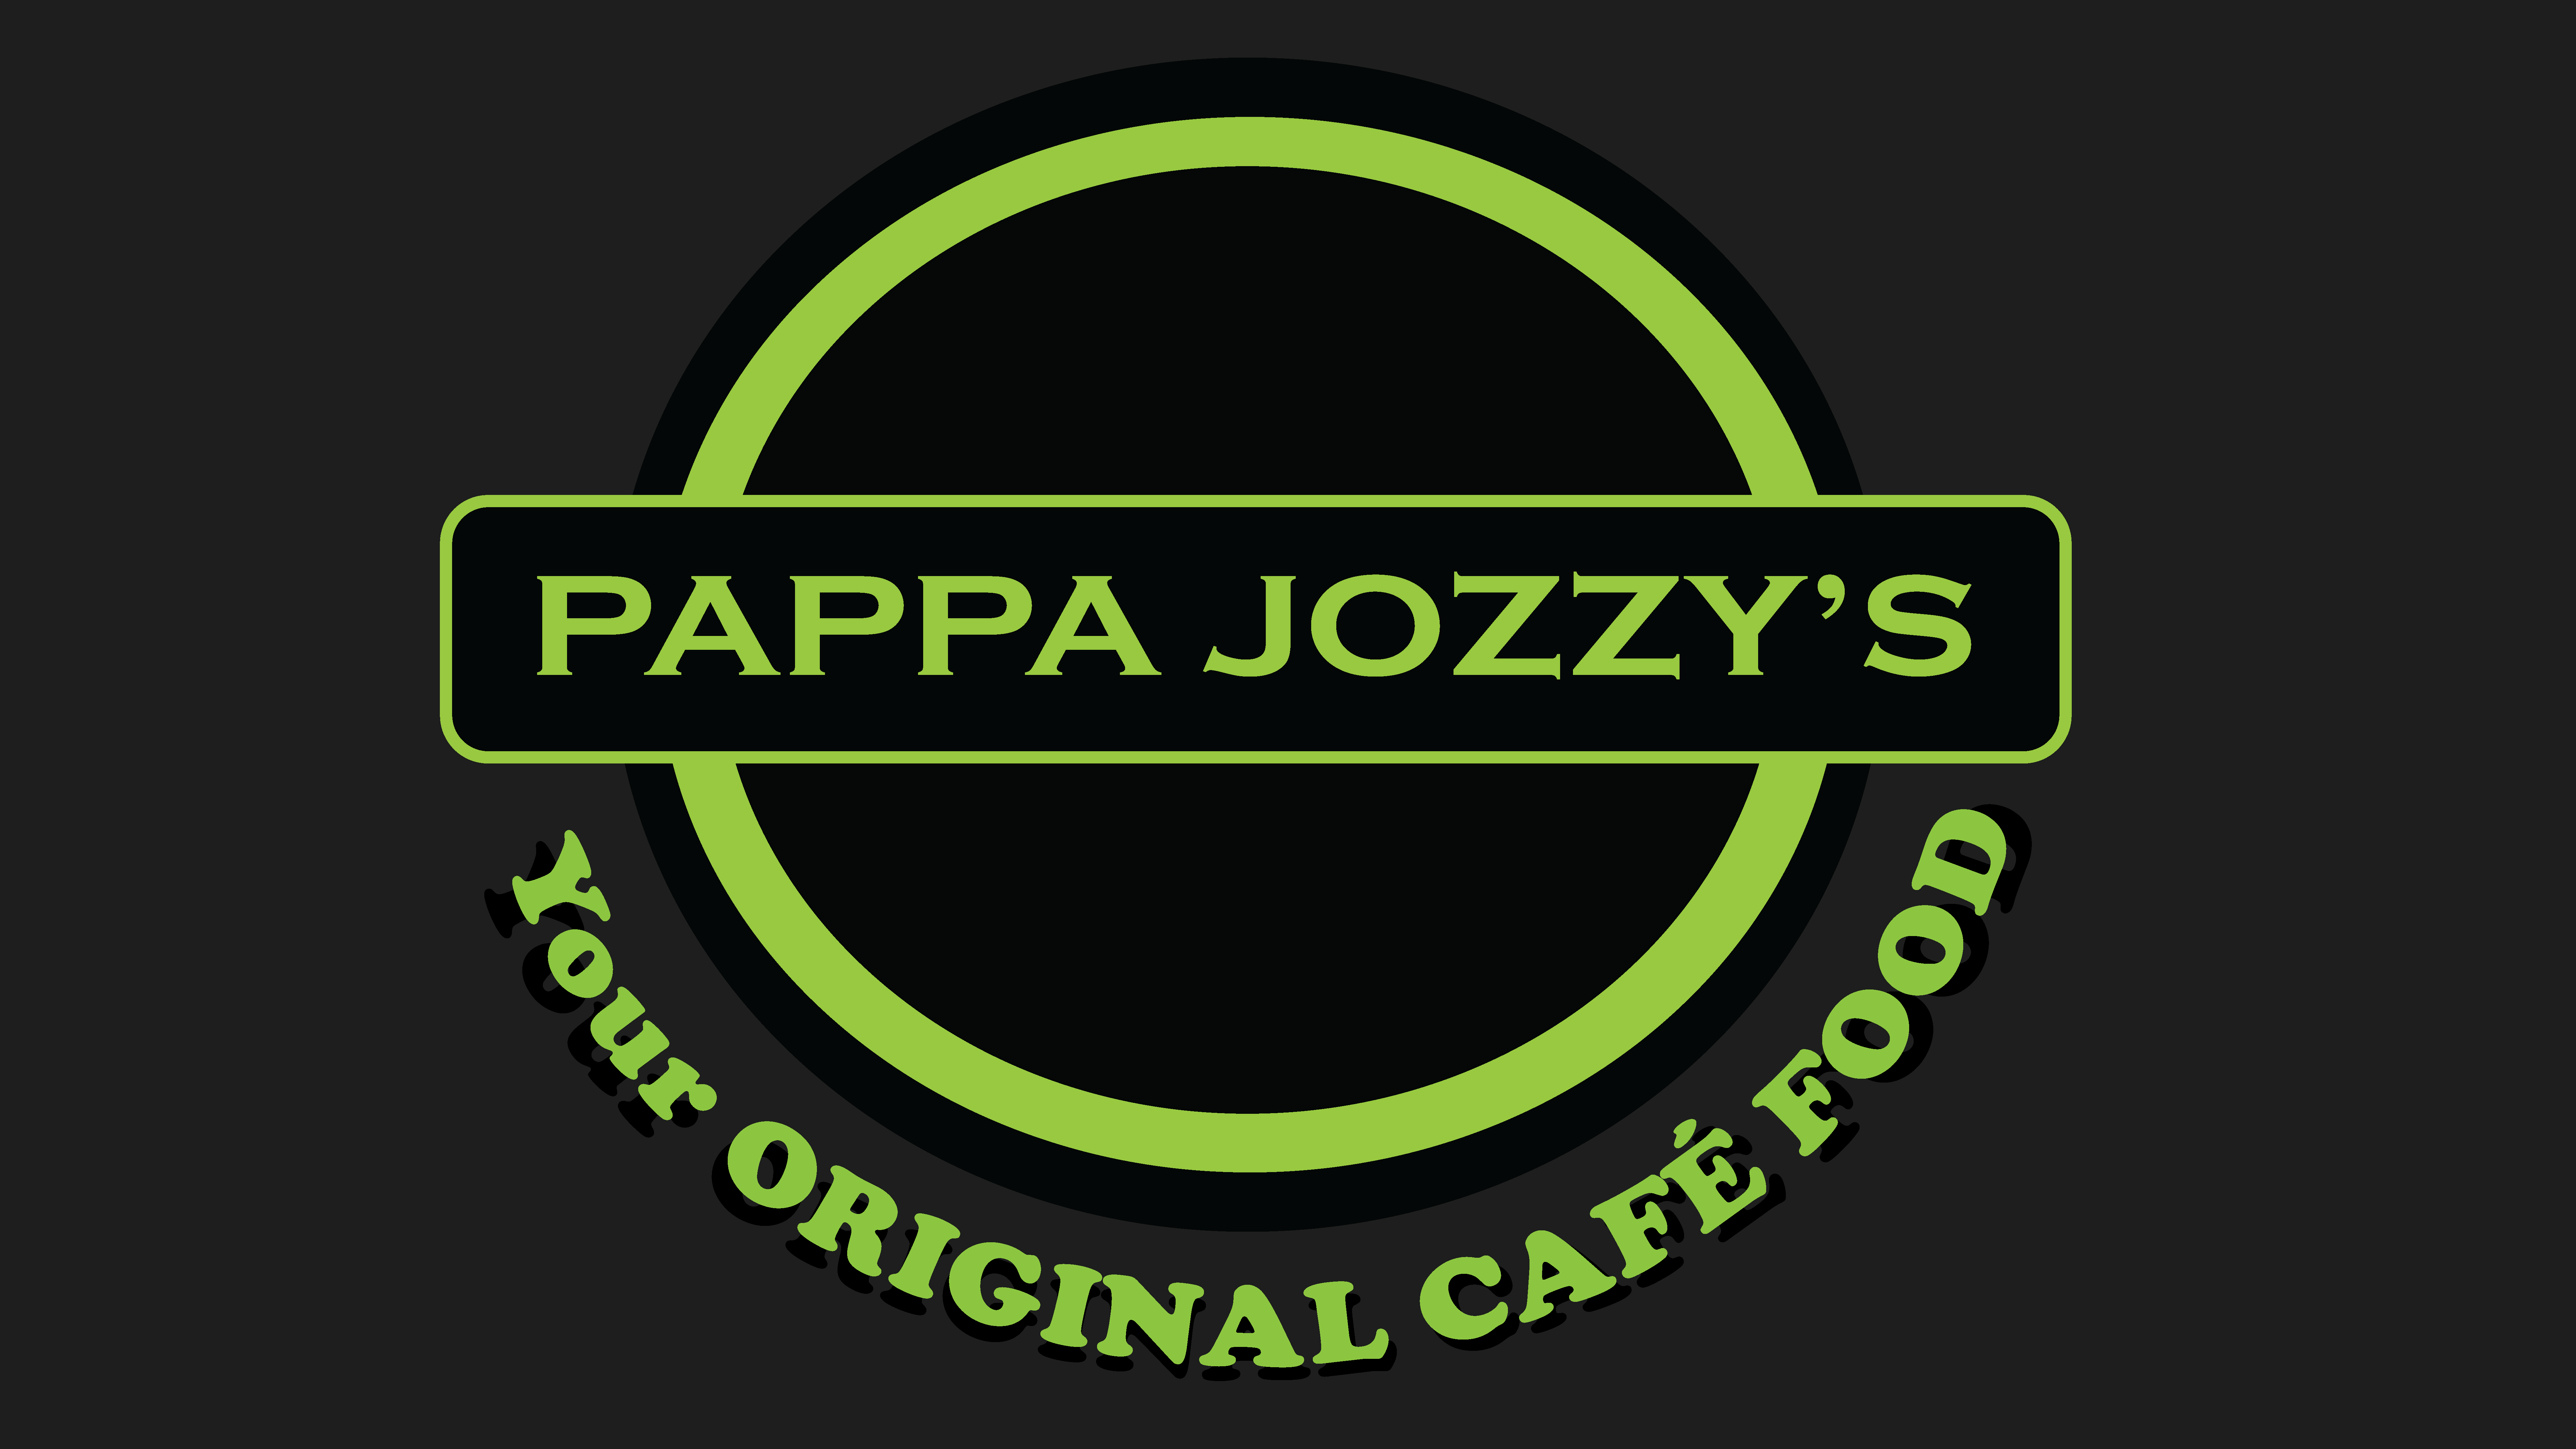 Pappa Jozzy's